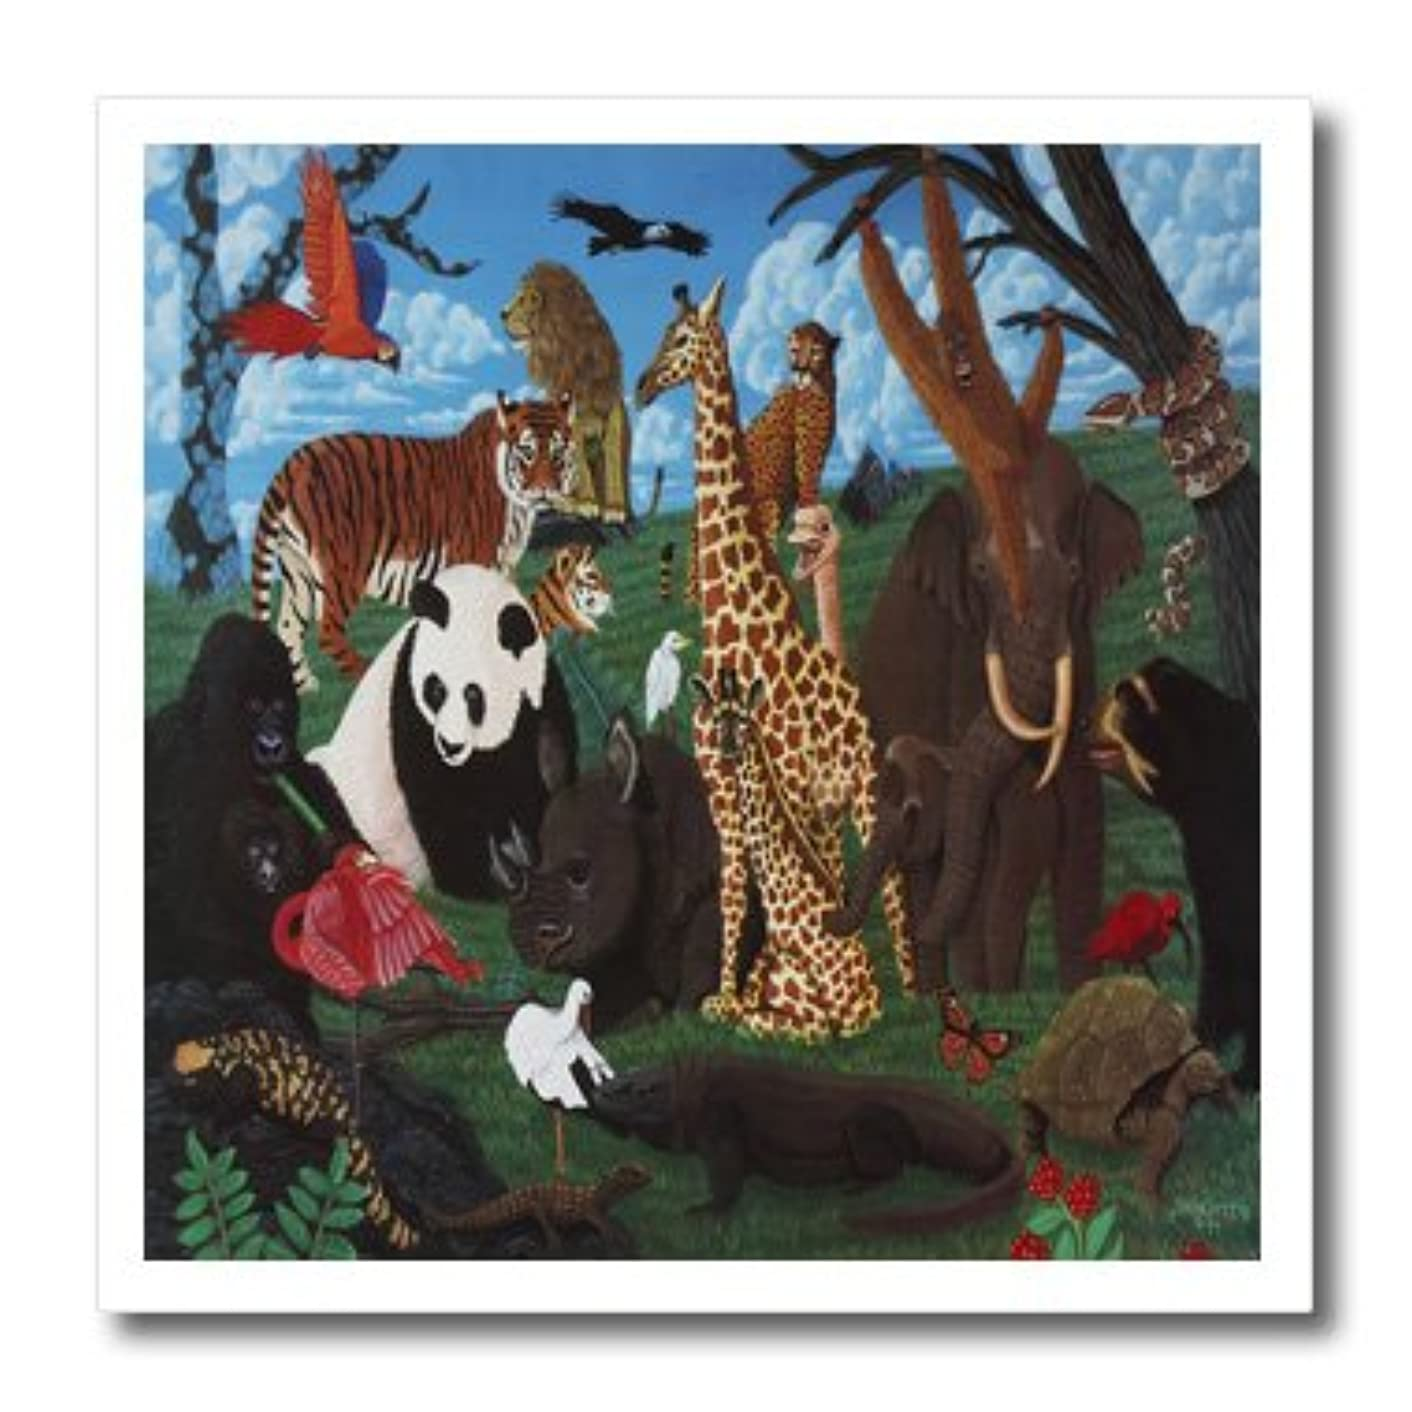 3dRose ht_3214_3 Zoo Animals Iron on Heat Transfer for White Material, 10 by 10-Inch